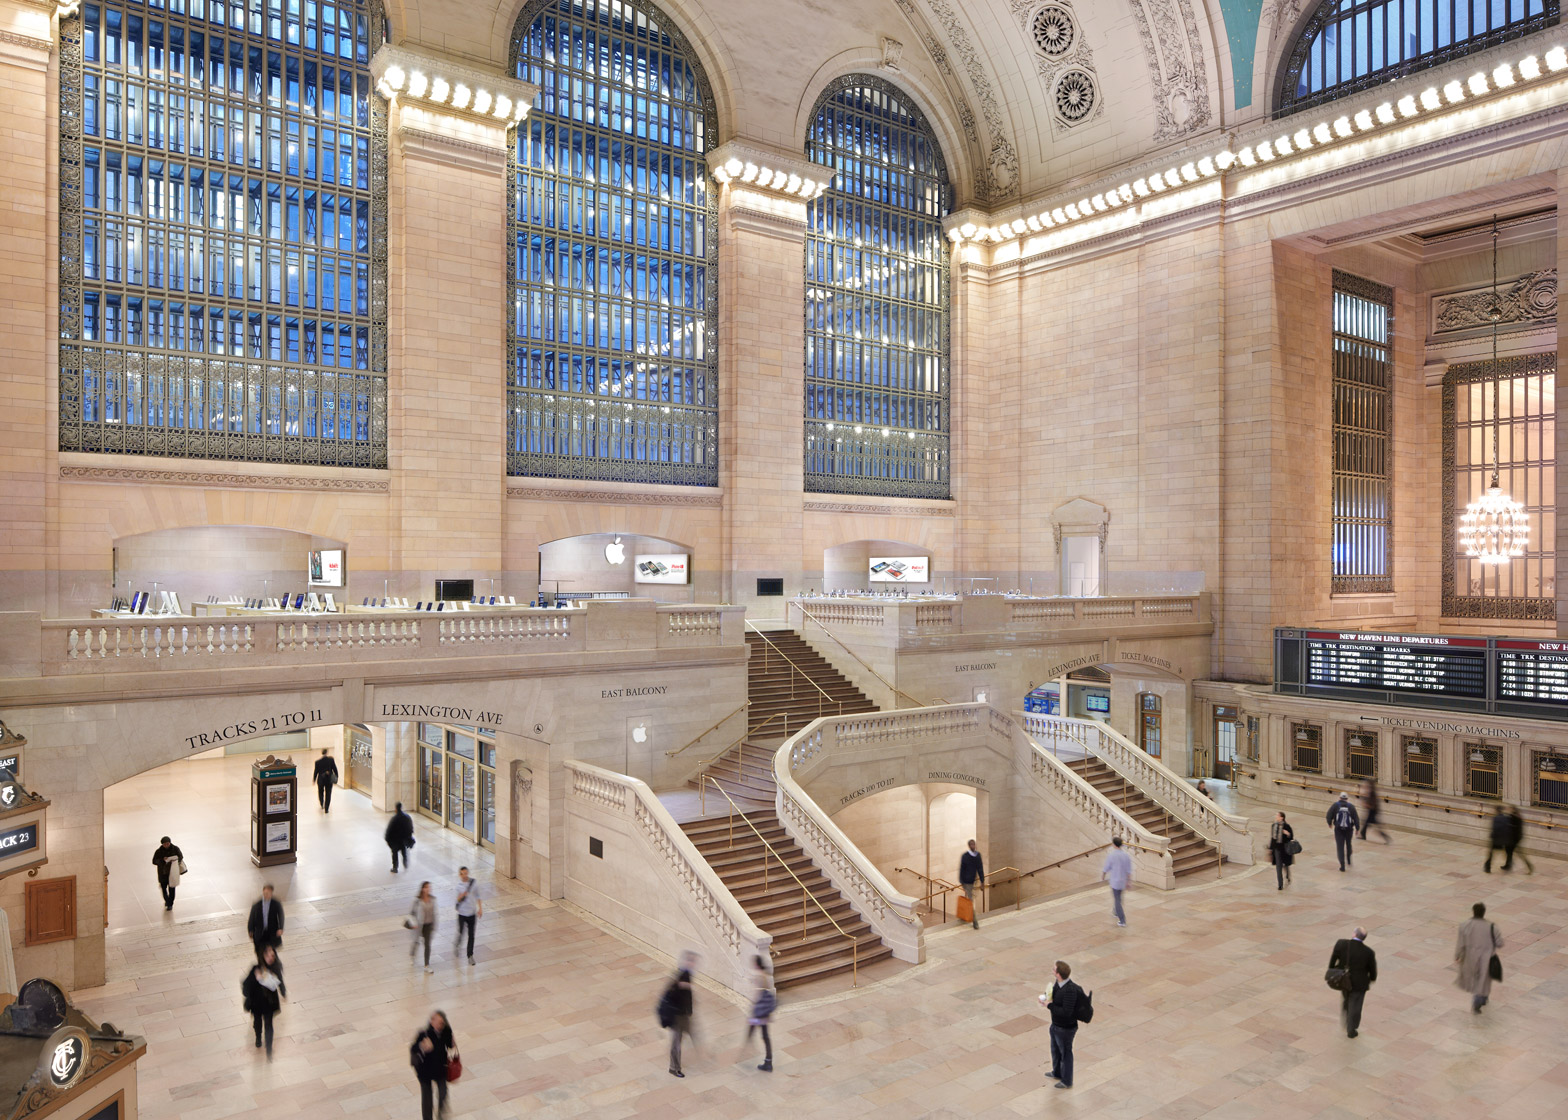 The Manhattan Apple store in Grand Central Station